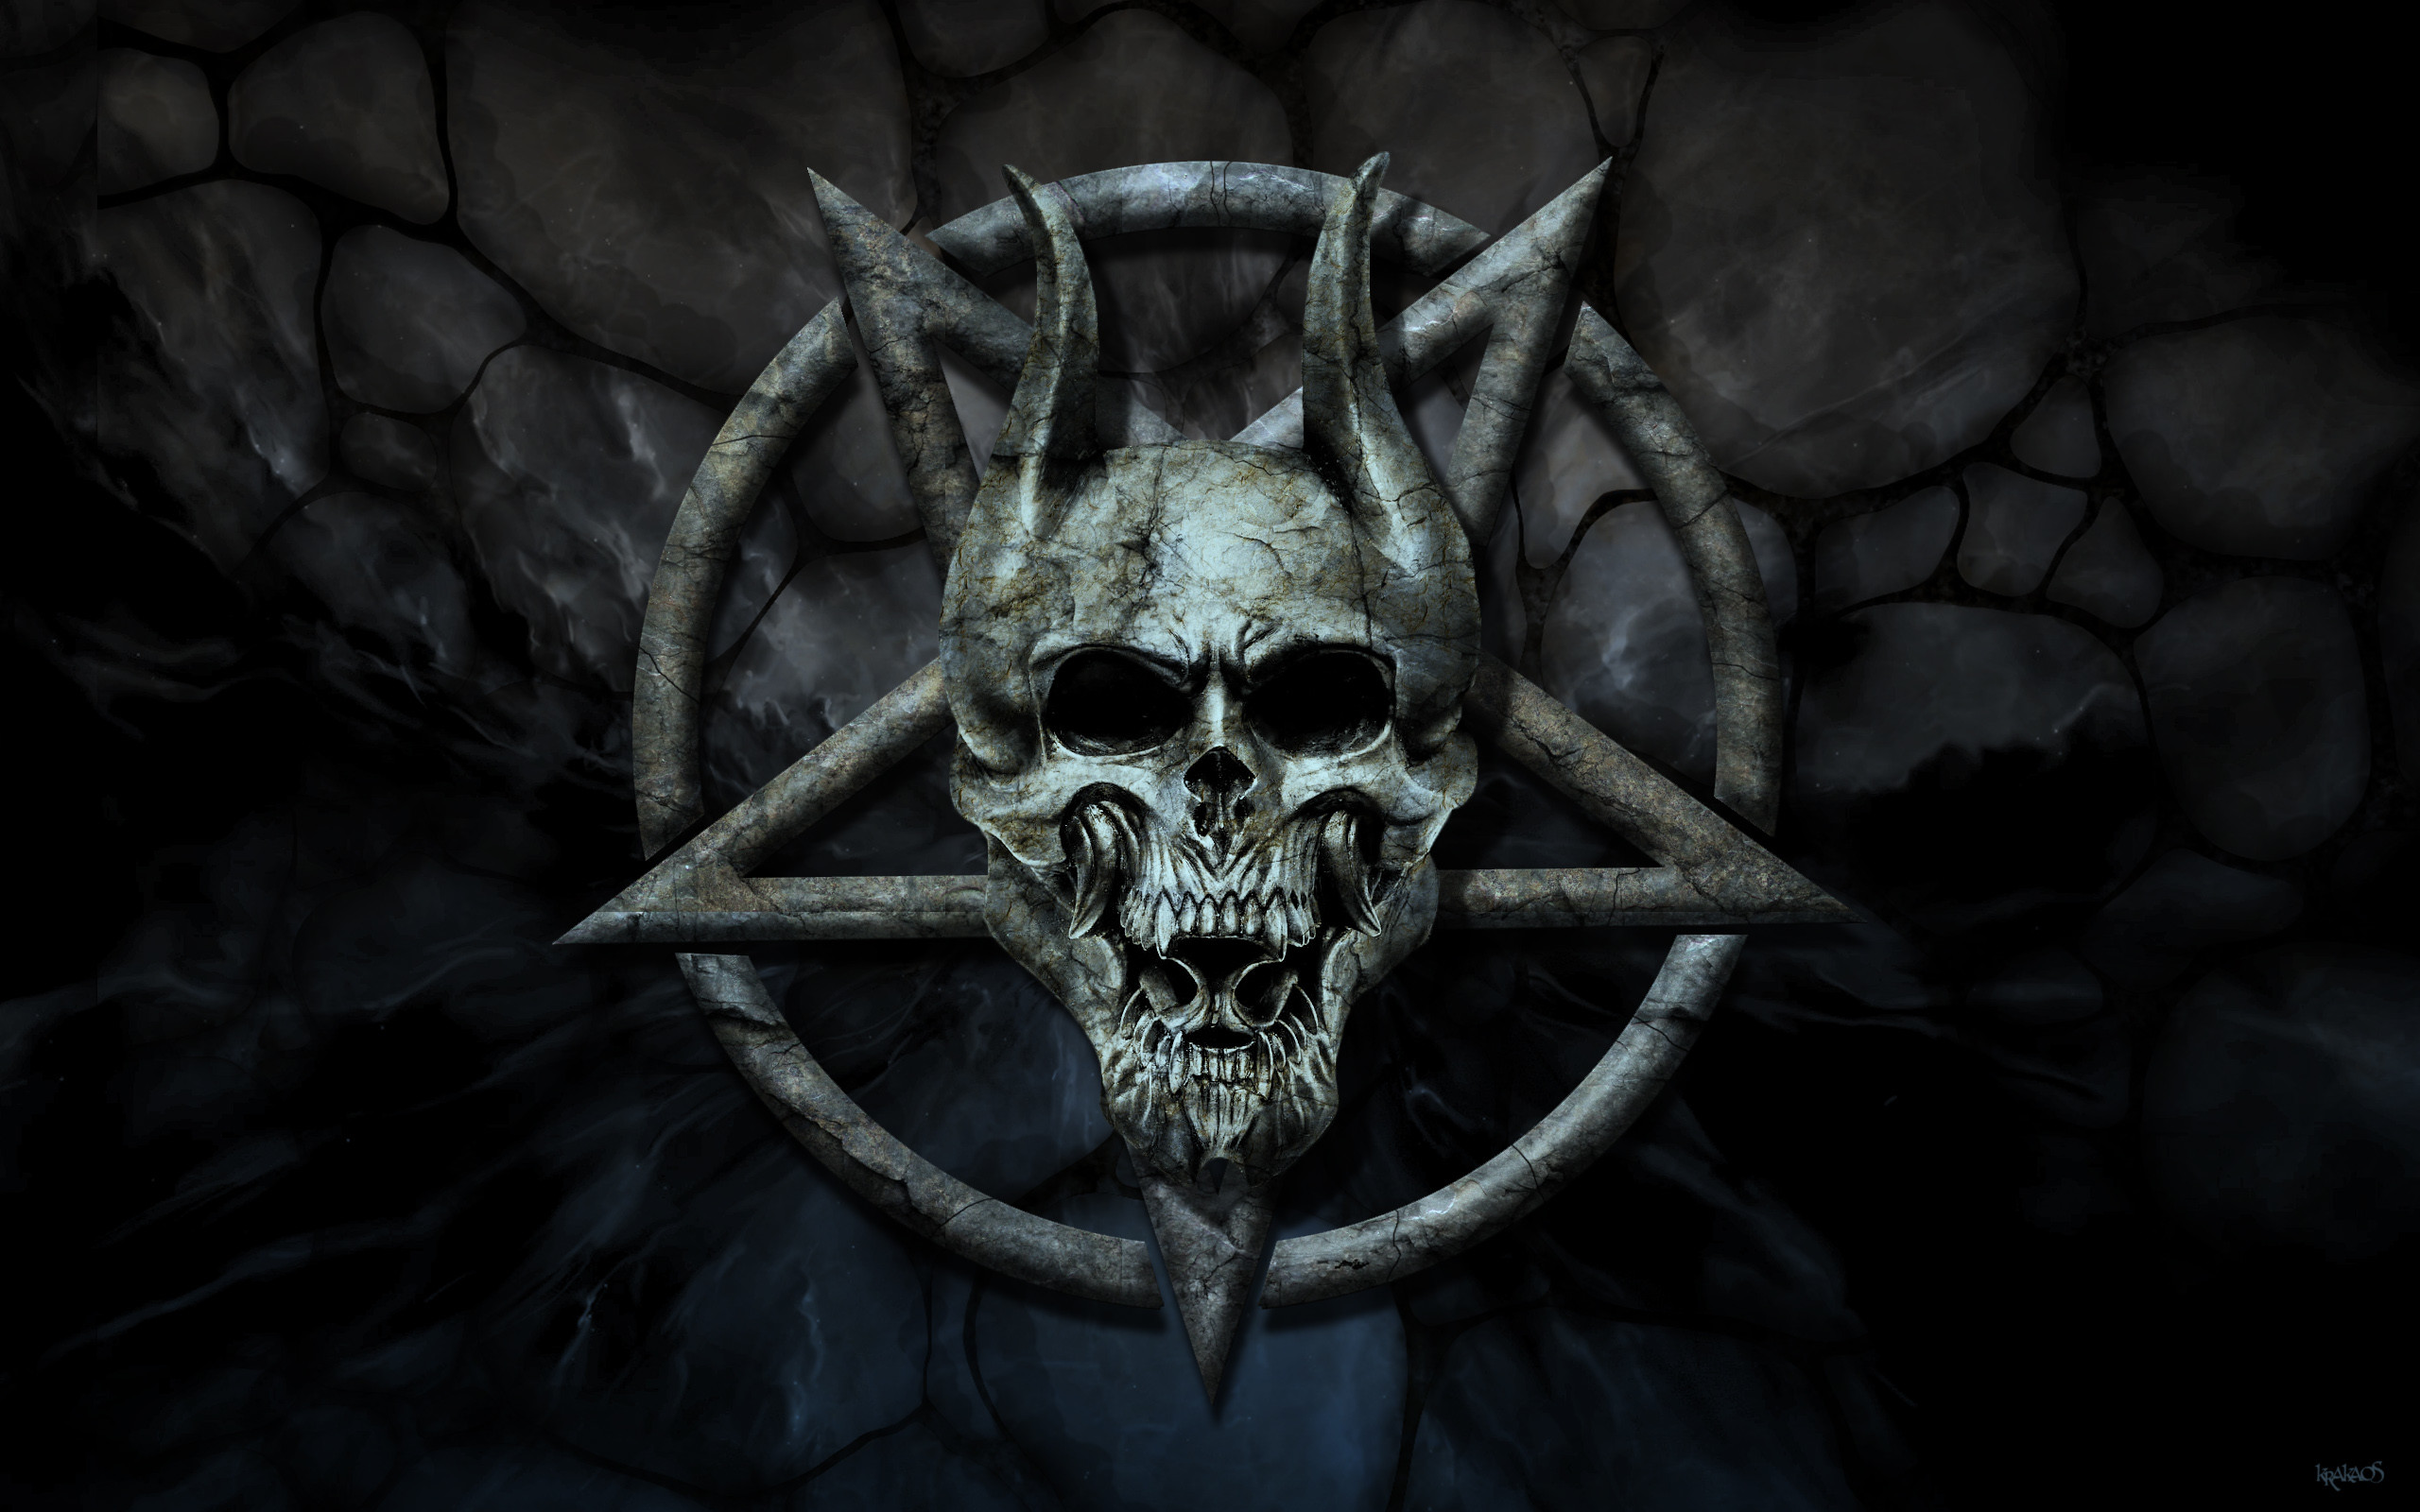 Skull Wallpapers – Android Apps on Google Play